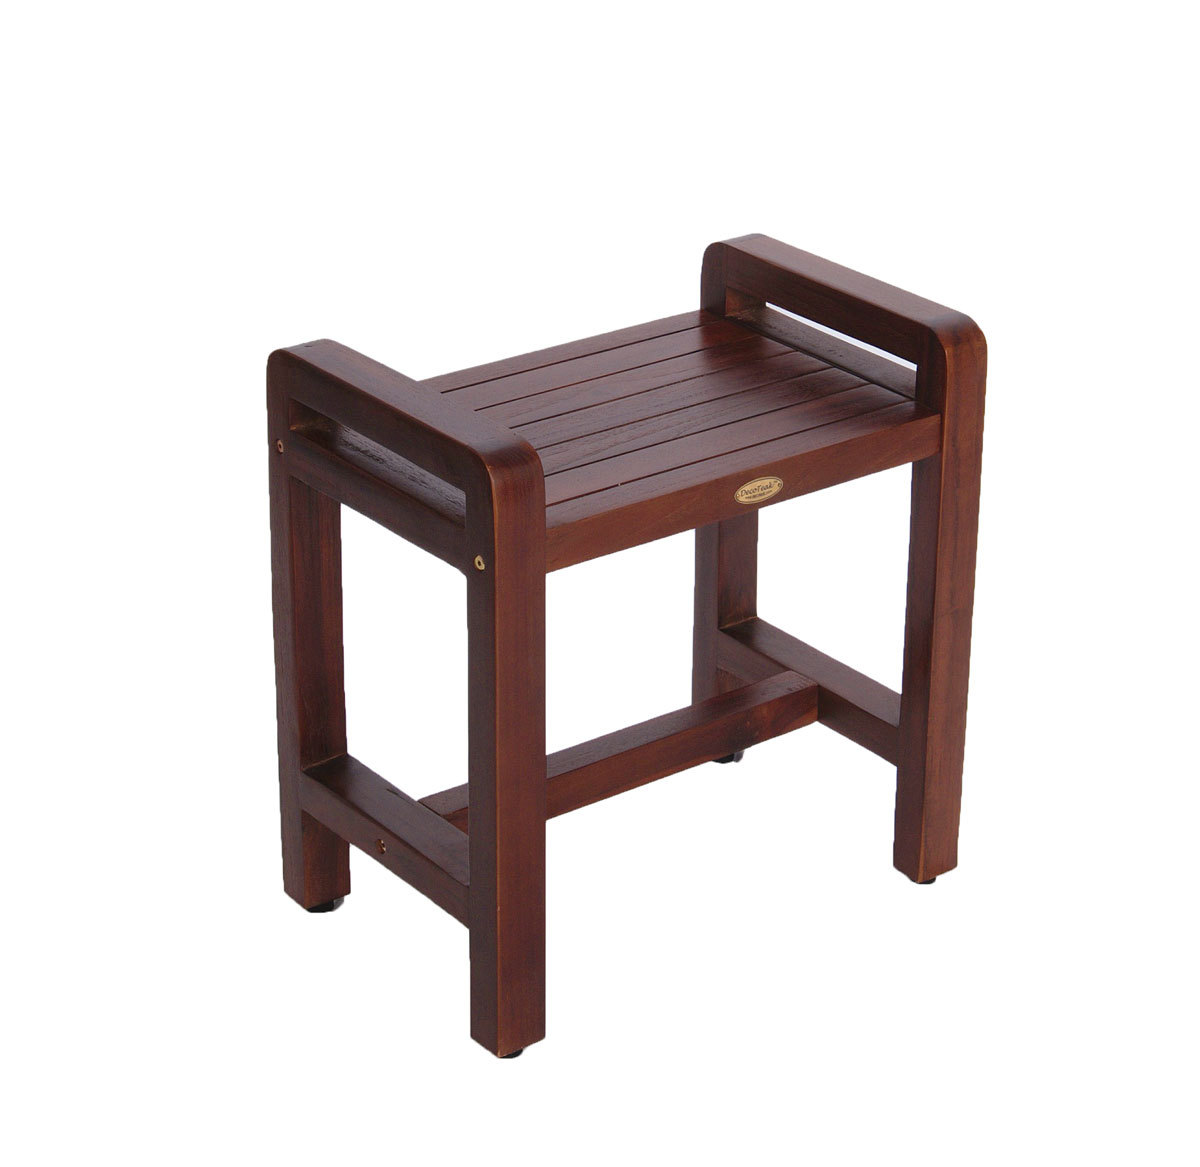 "Decoteak DT106 Classic 20"" Ergonomic Teak Shower Stool with Liftaid Arms and Shelf"